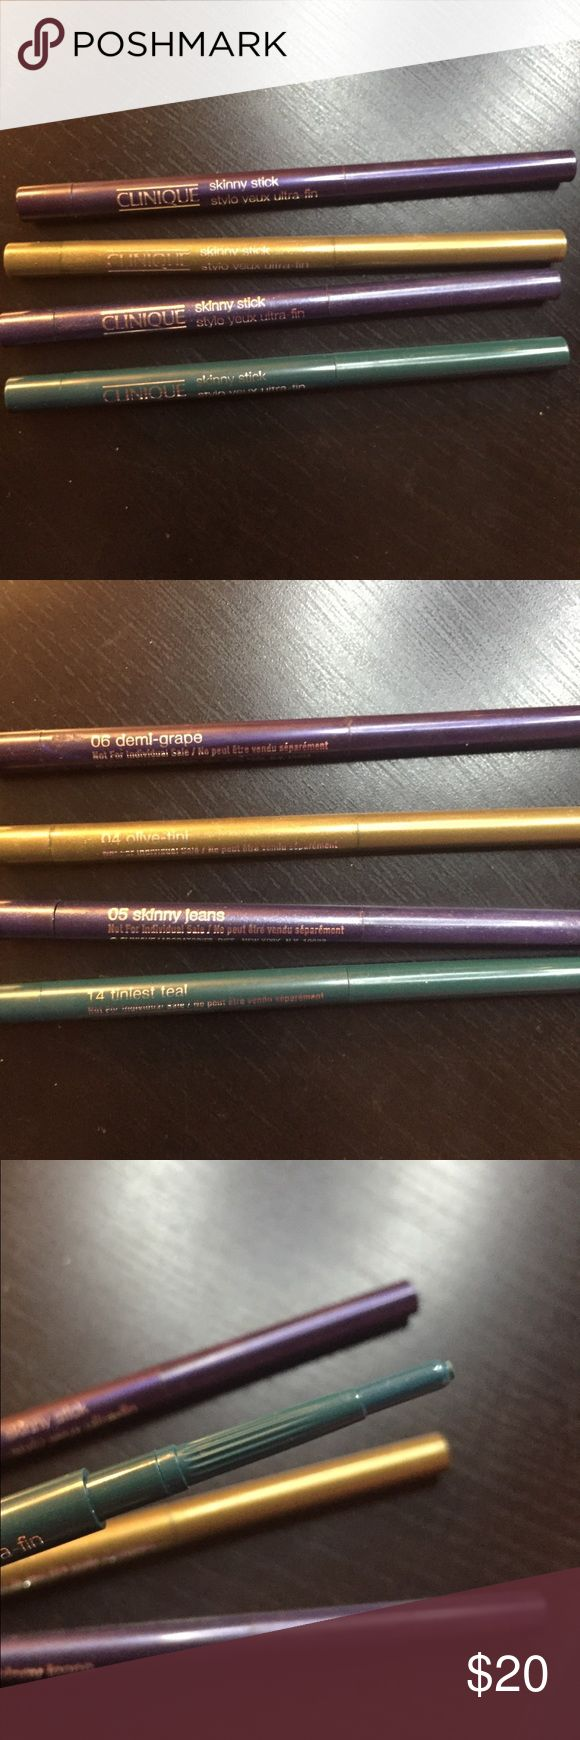 Clinique skinny stick eyeliners Brand new, never used. Twist up eyeliner sticks. Can be separated upon request. Came all together and are slightly smaller than the full size. Clinique Makeup Eyeliner